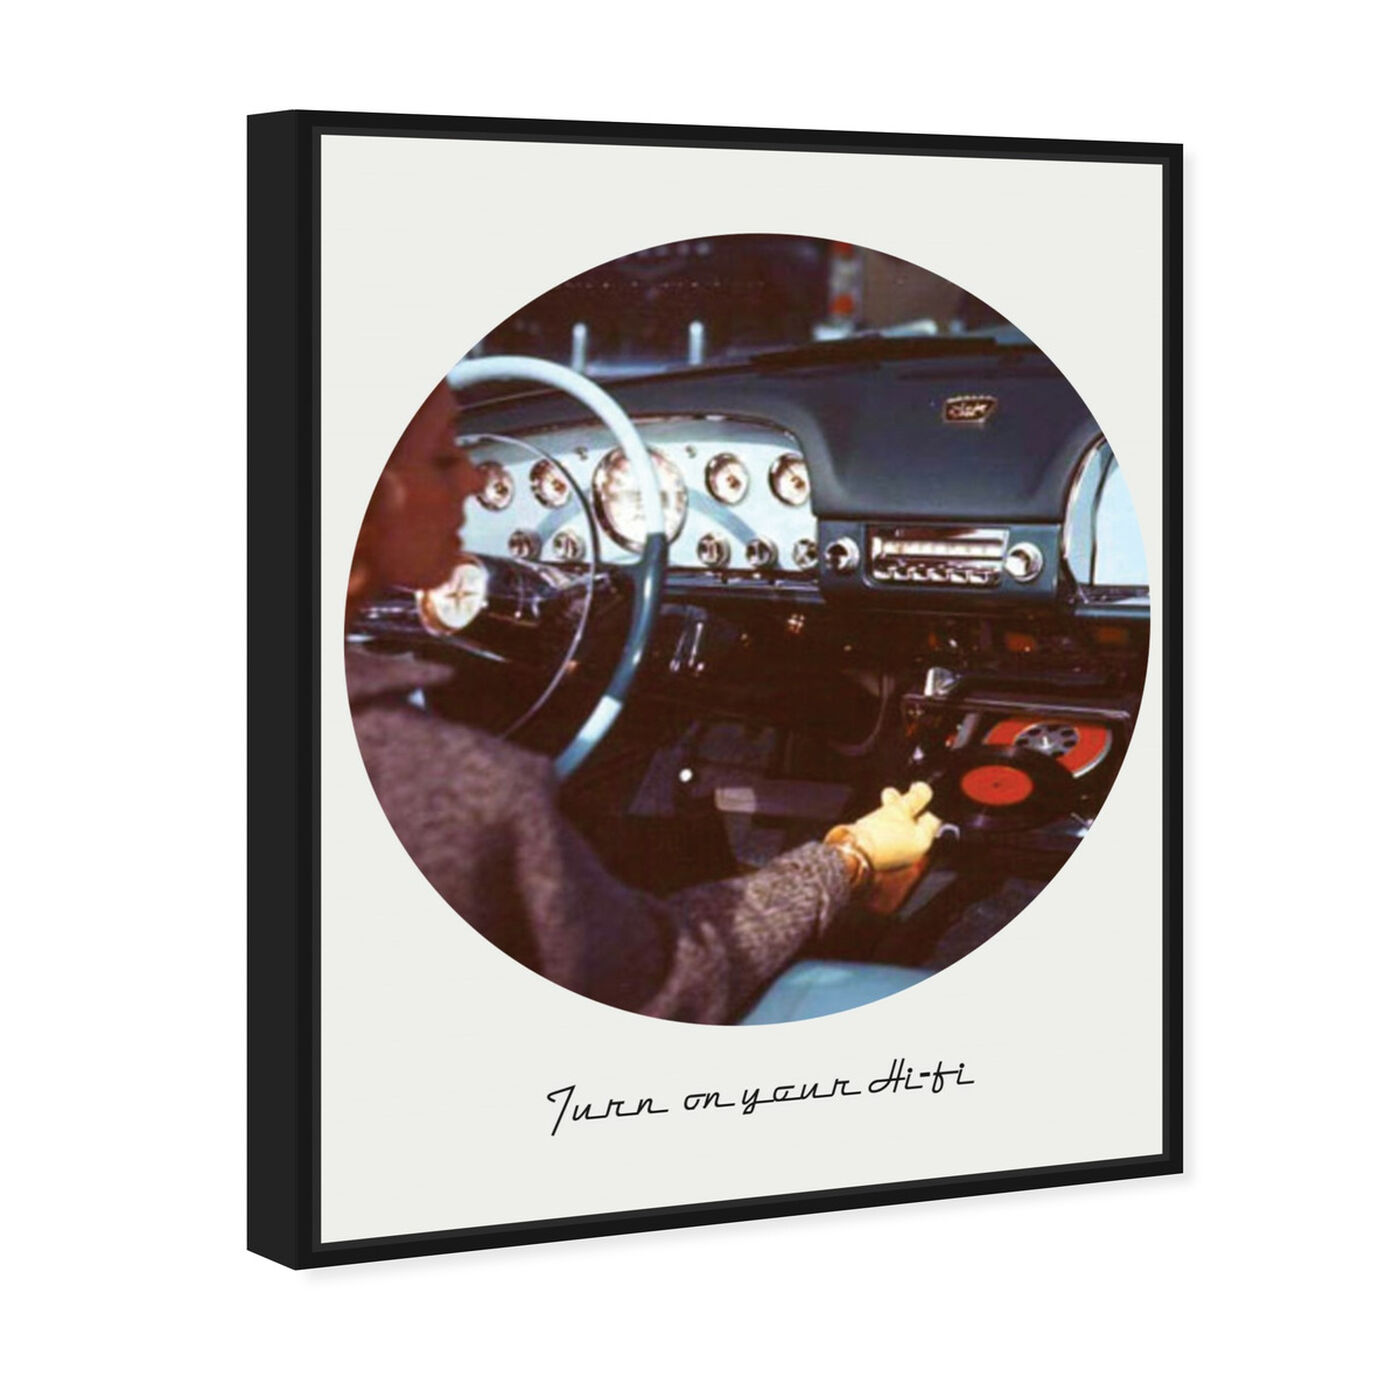 Angled view of Turn on your HiFi featuring transportation and automobiles art.